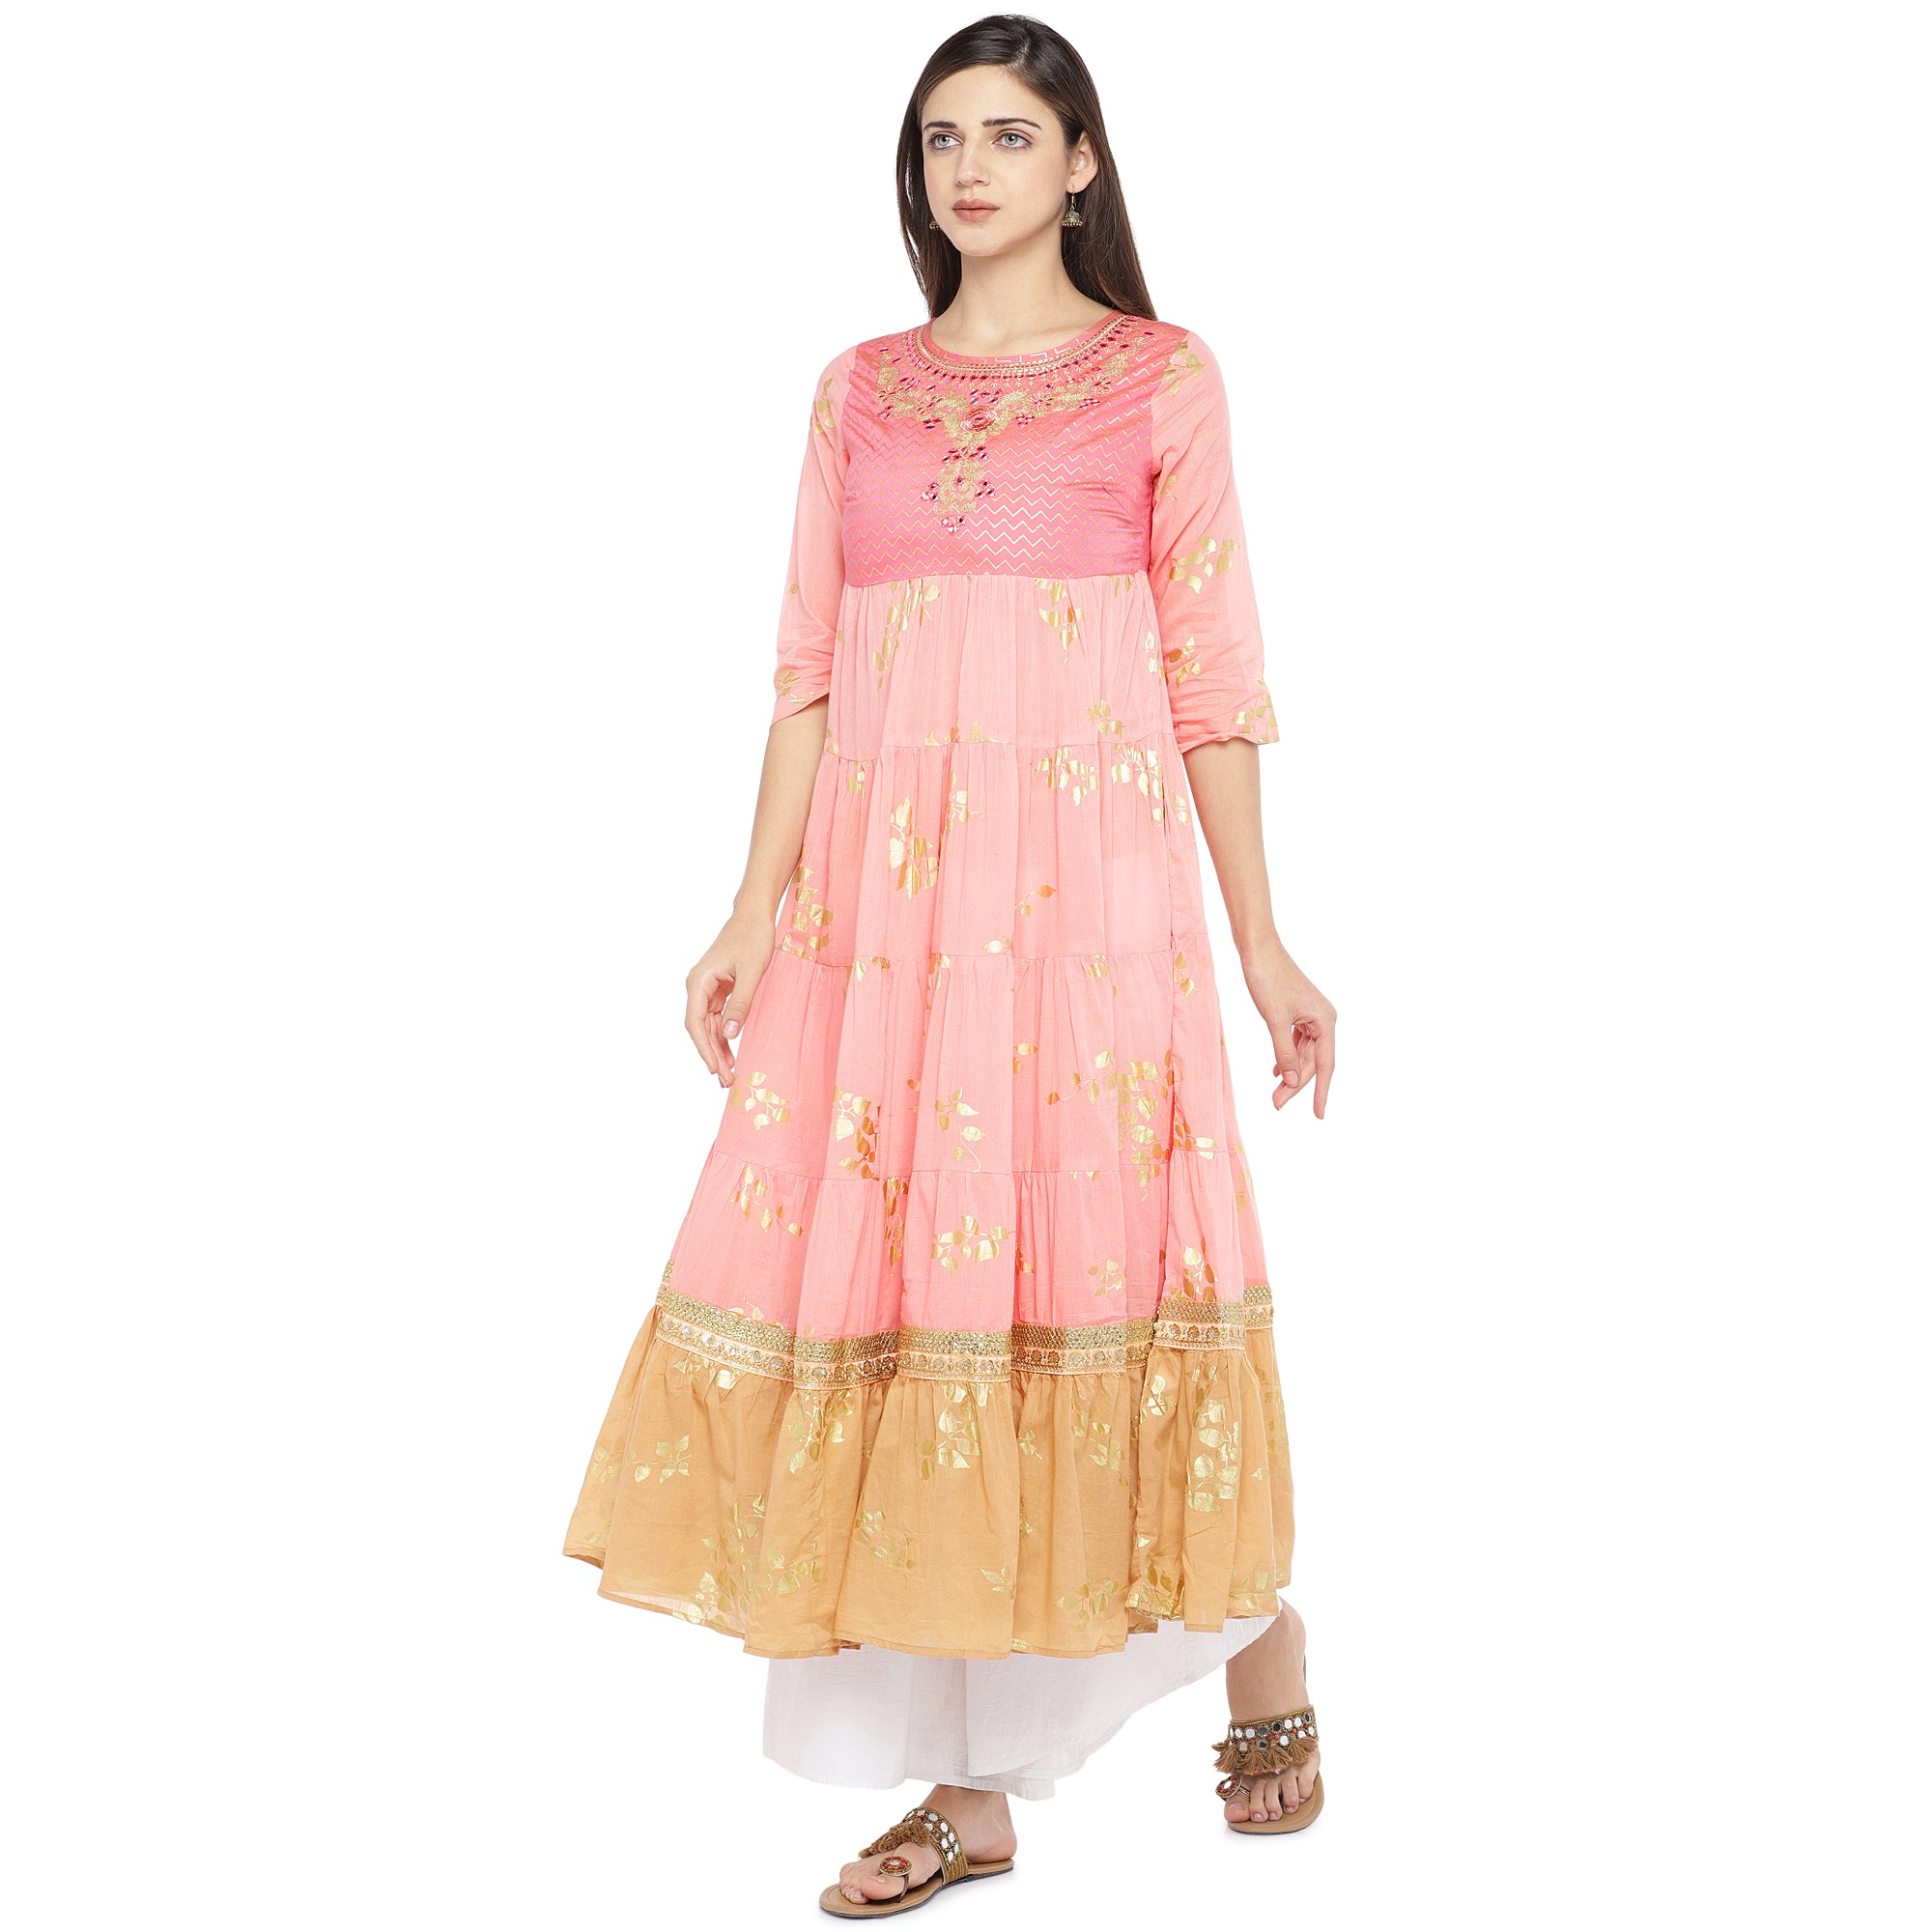 Peach-Coloured & Mustard Yellow Colourblocked Anarkali Kurta-2